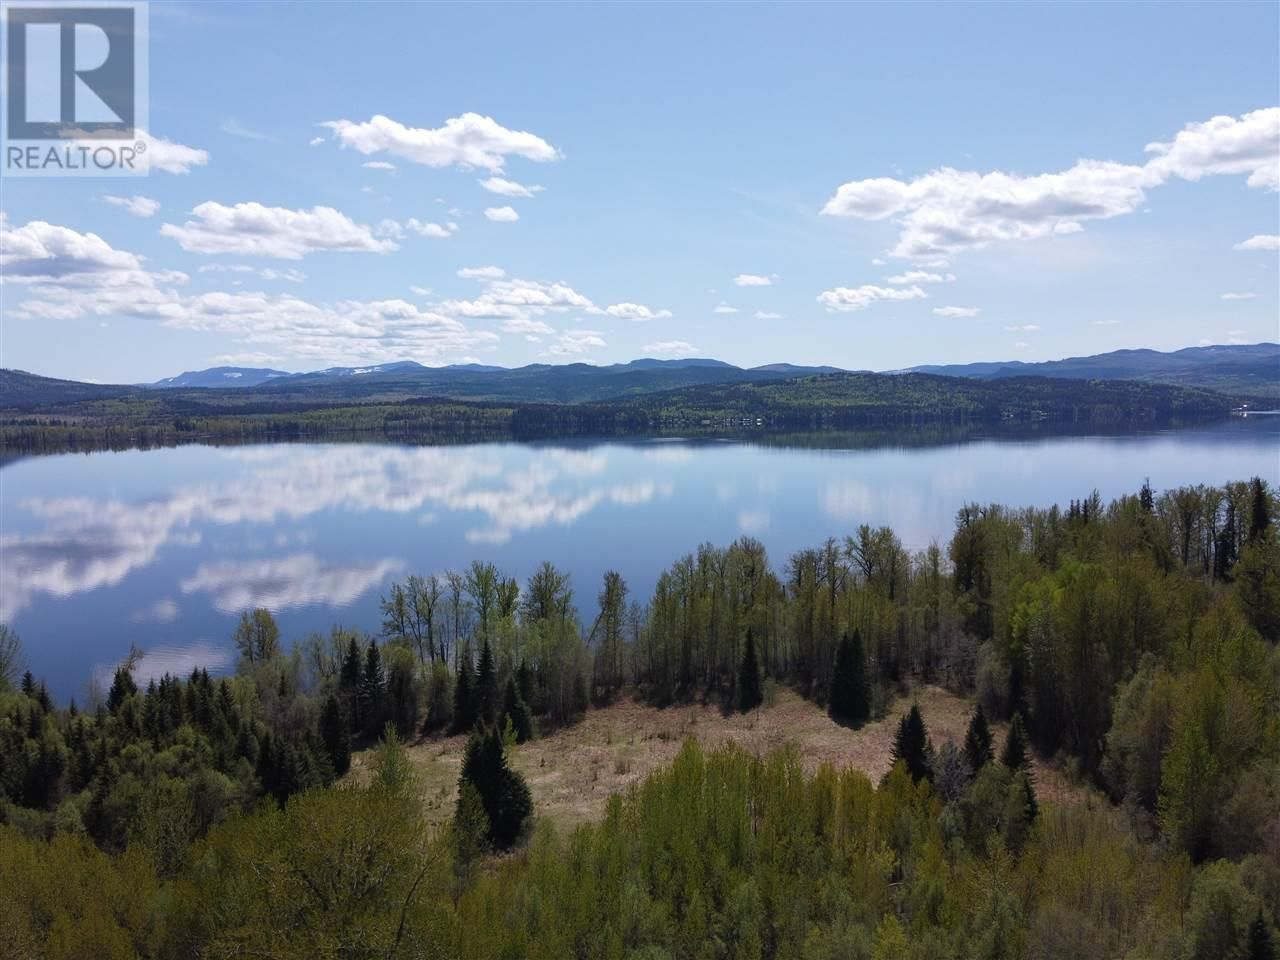 Main Photo: DL 2067 HOOVER BAY ROAD in Canim Lake: Vacant Land for sale : MLS®# R2593358